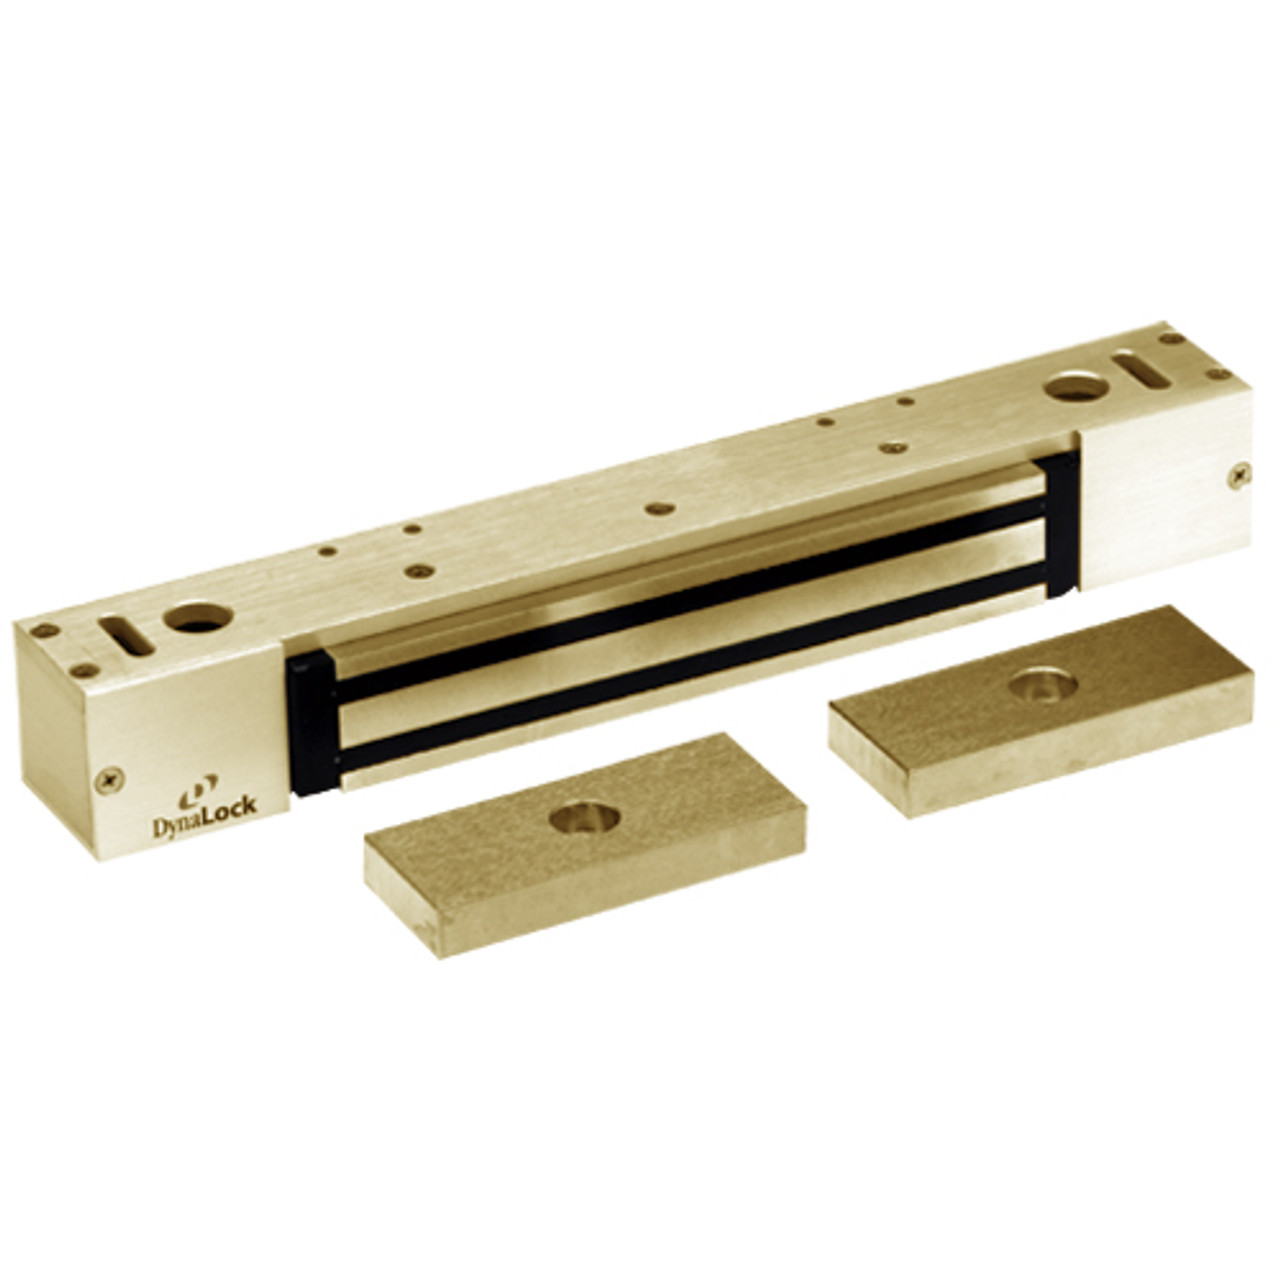 2268-15-US4 DynaLock 2268 Series Single Classic Low Profile Electromagnetic Lock for Pair Outswing Door in Satin Brass